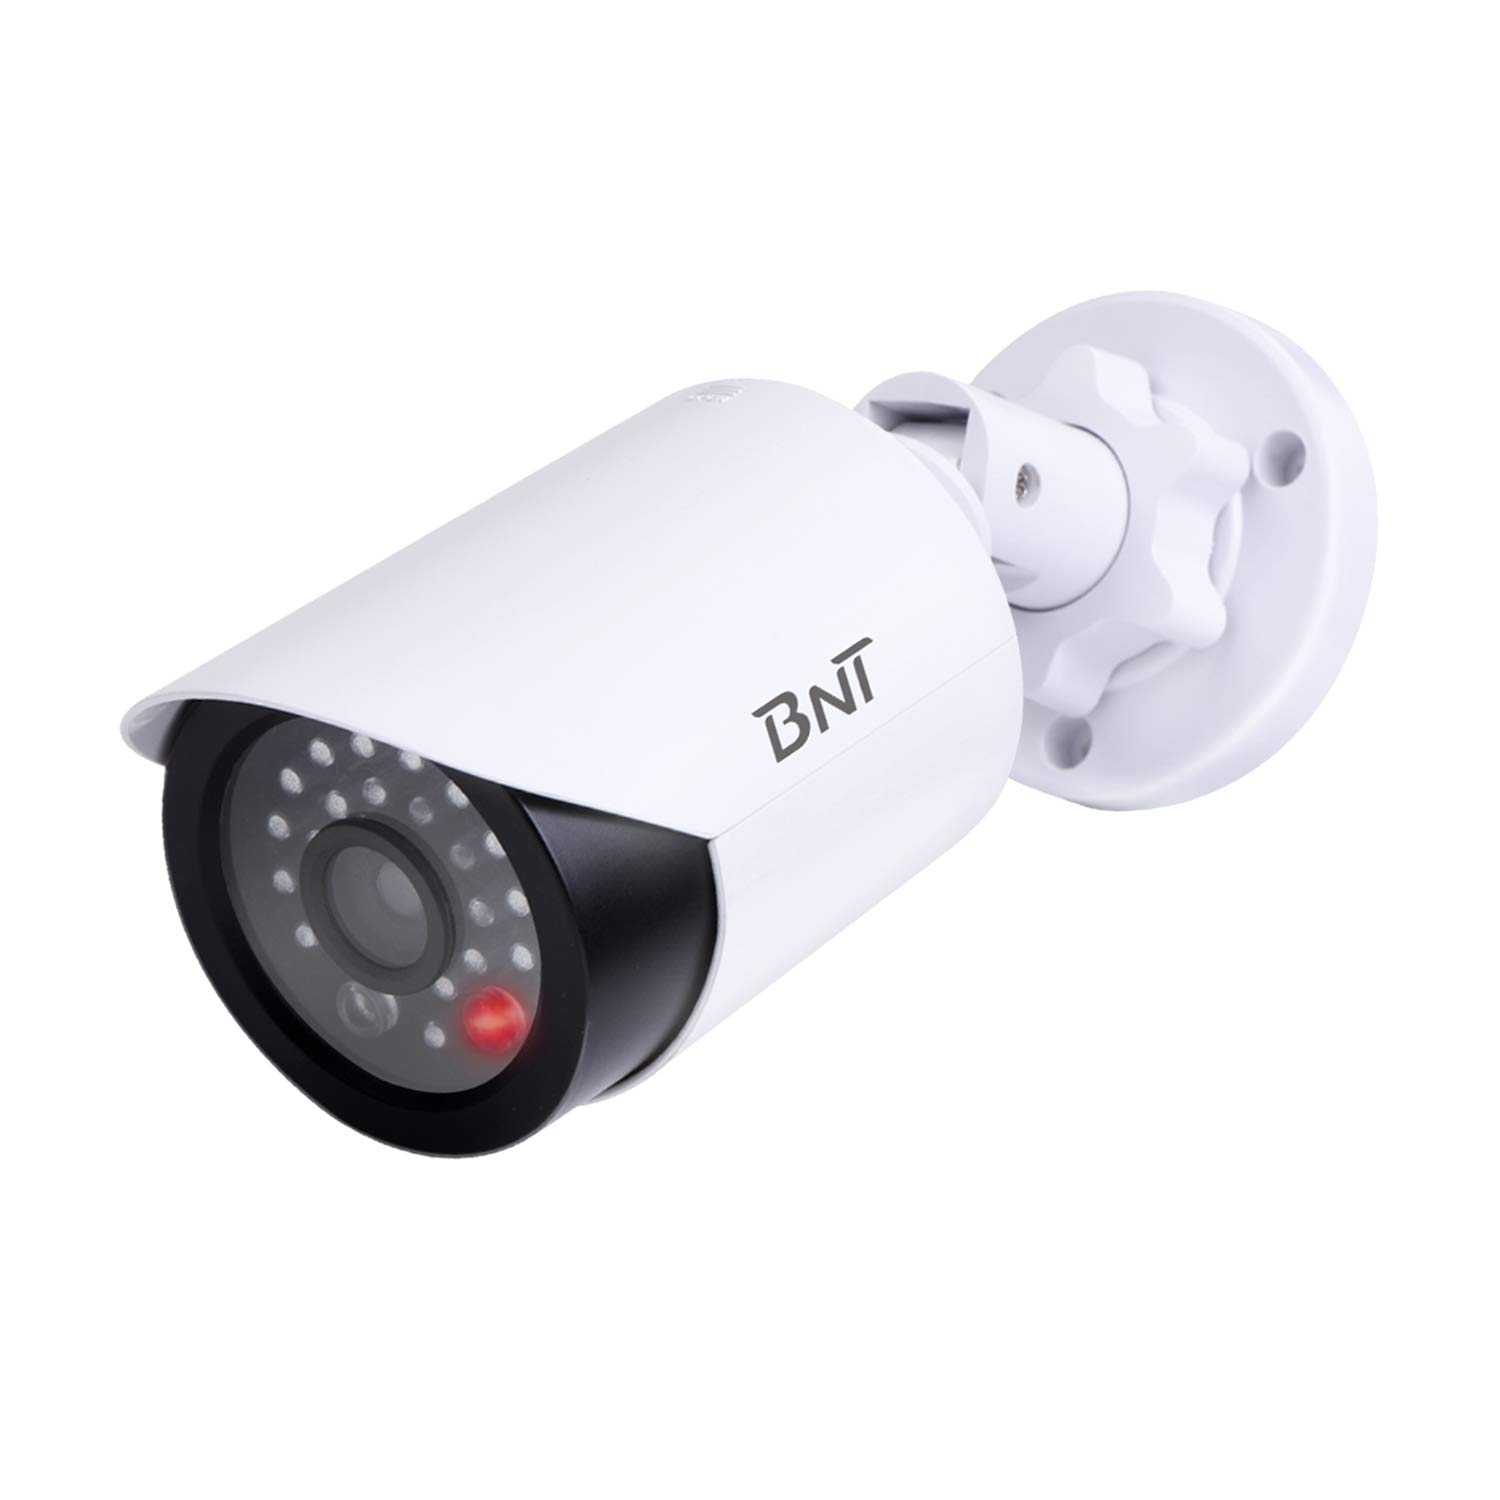 BNT Dummy Fake Security Camera, with One Red LED Light, for Home and Businesses Security Indoor/Outdoor (1 Pack, White)